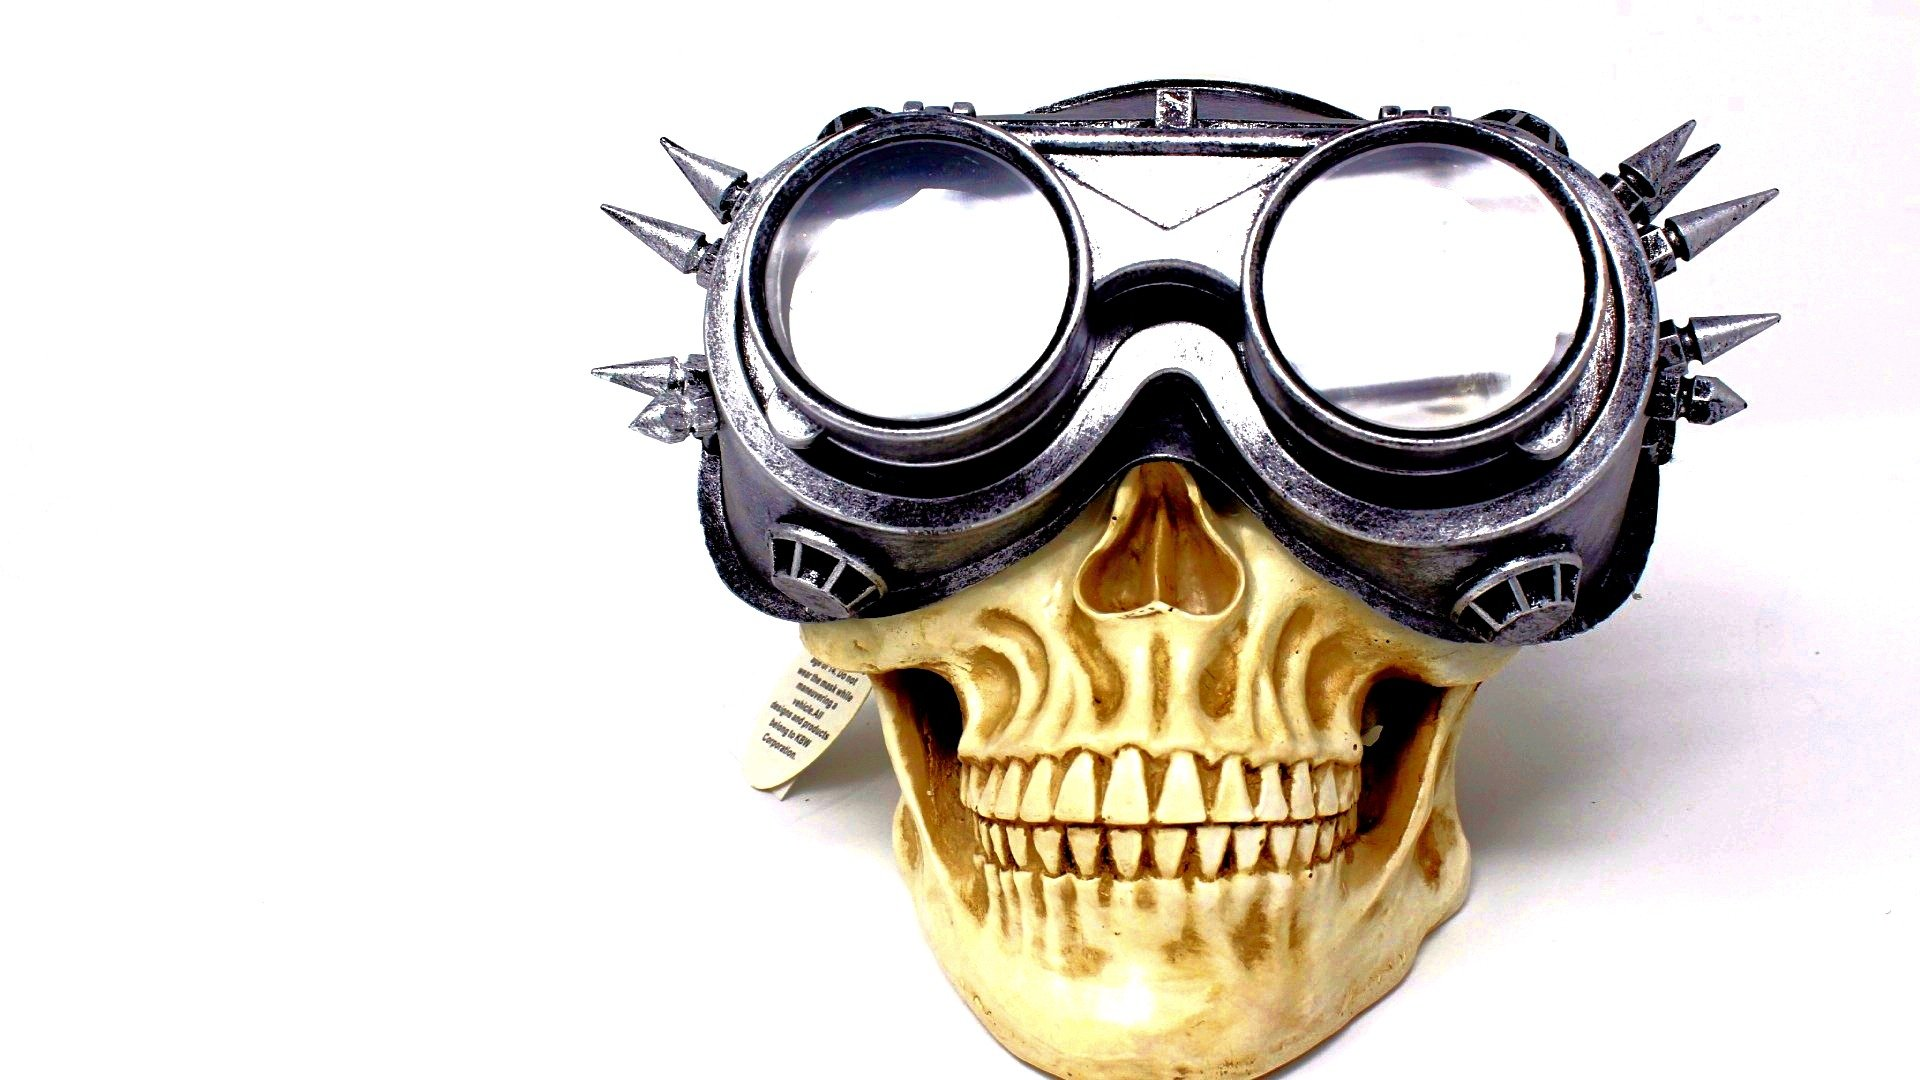 Steampunk Flip Aviator Goggles Apocalypse Goggle Sunglasses Cosplay Cyber Gothic (Silver) by Paradise Treasures